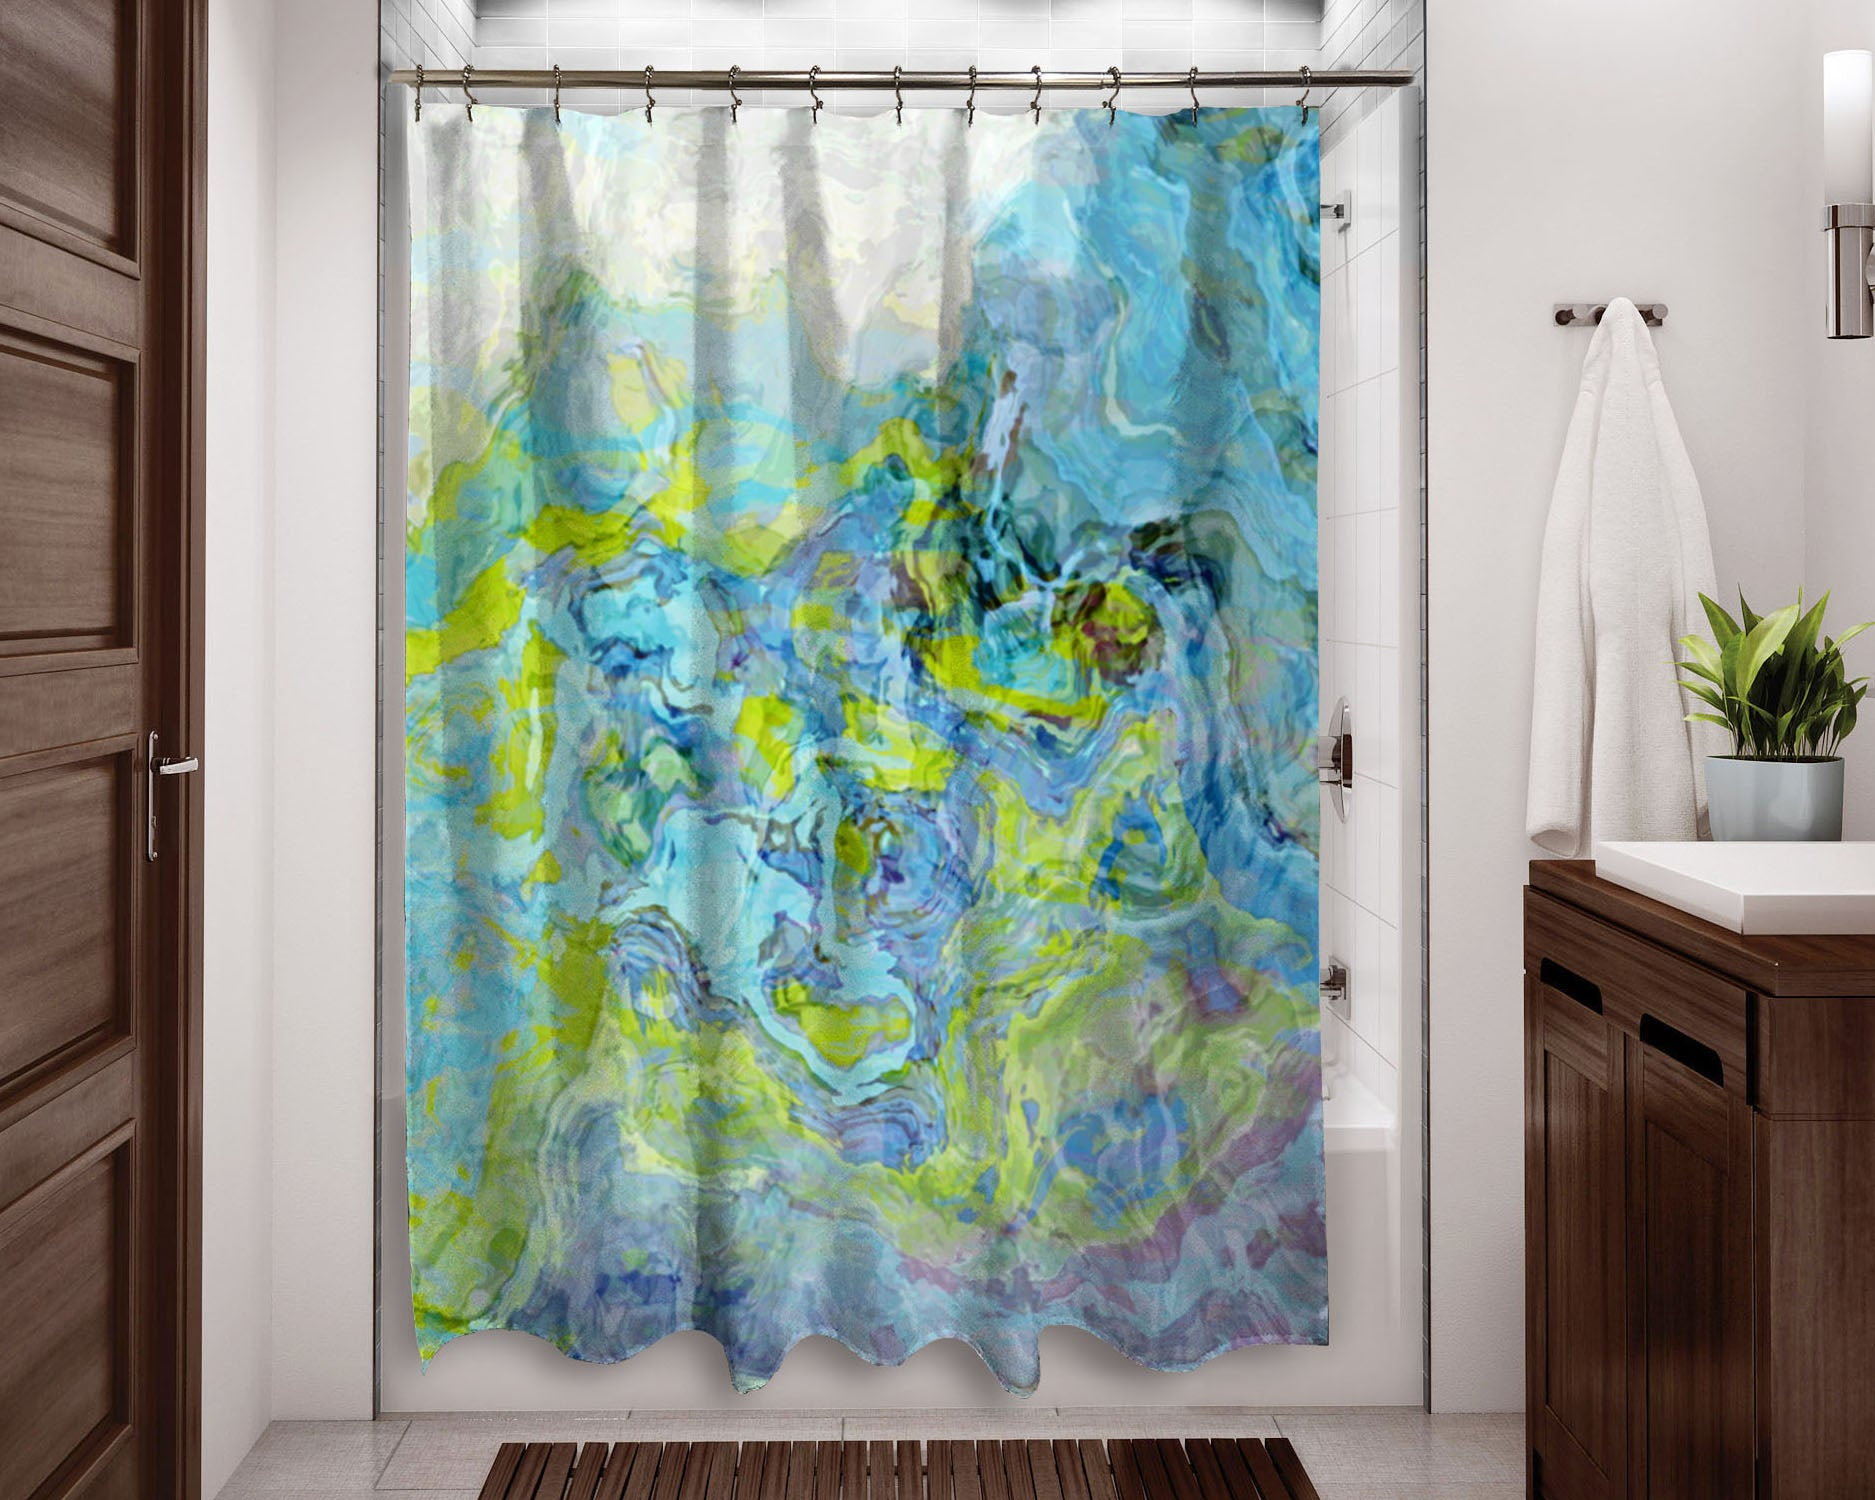 Abstract Shower Curtain Green Aqua Blue White Dusty Lilac